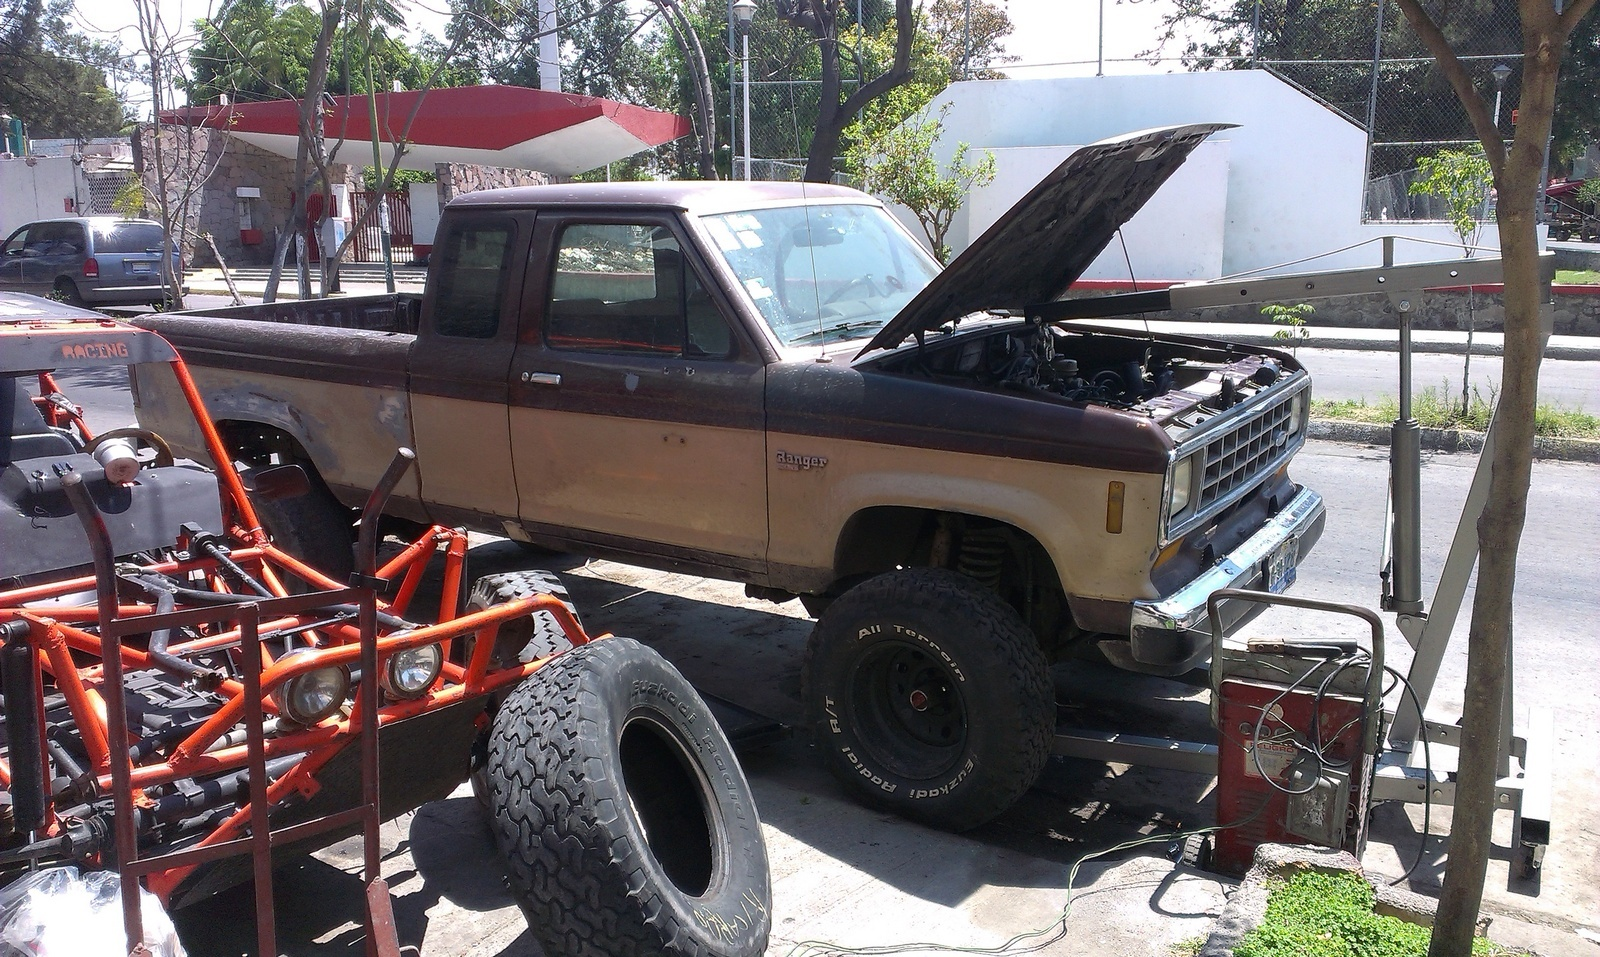 Ford Ranger Questions What All Do You Have To Put A 302 In 87 Mustang Gt O2 Wiring Harness Diagram Torque Is Very Good And The 4x4 Work Fine Whit This Motor Engine Any My Facebook Kerry Flazzo Or Email Hackelmogmailcom